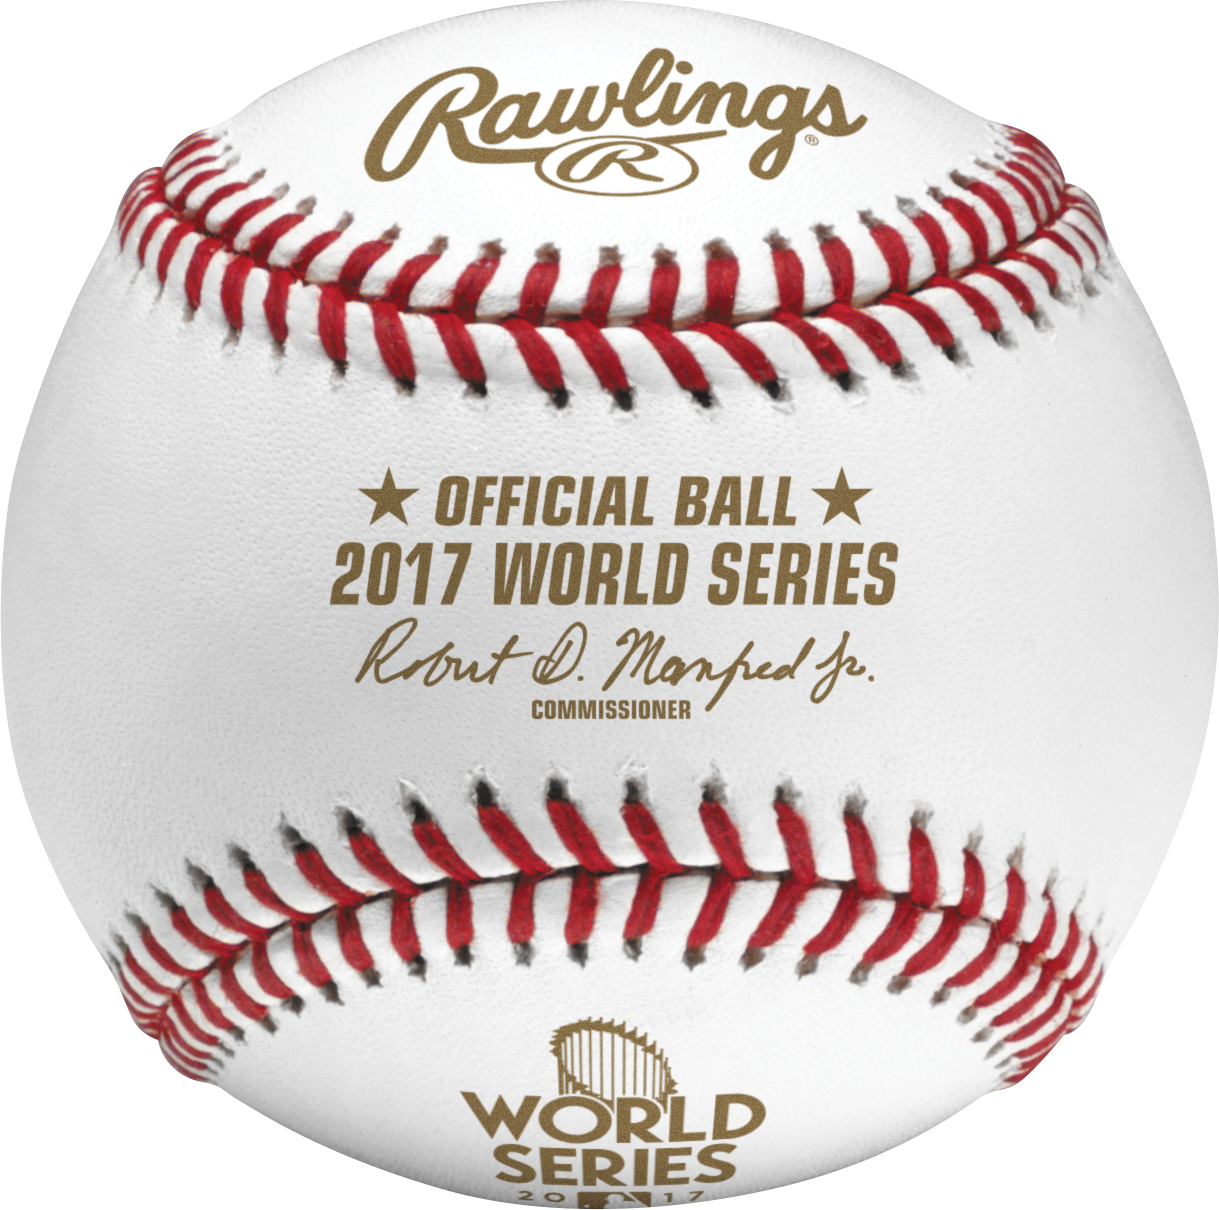 444cec11c 2017 World Series MLB Rawlings Official Baseball - Collectible Supplies